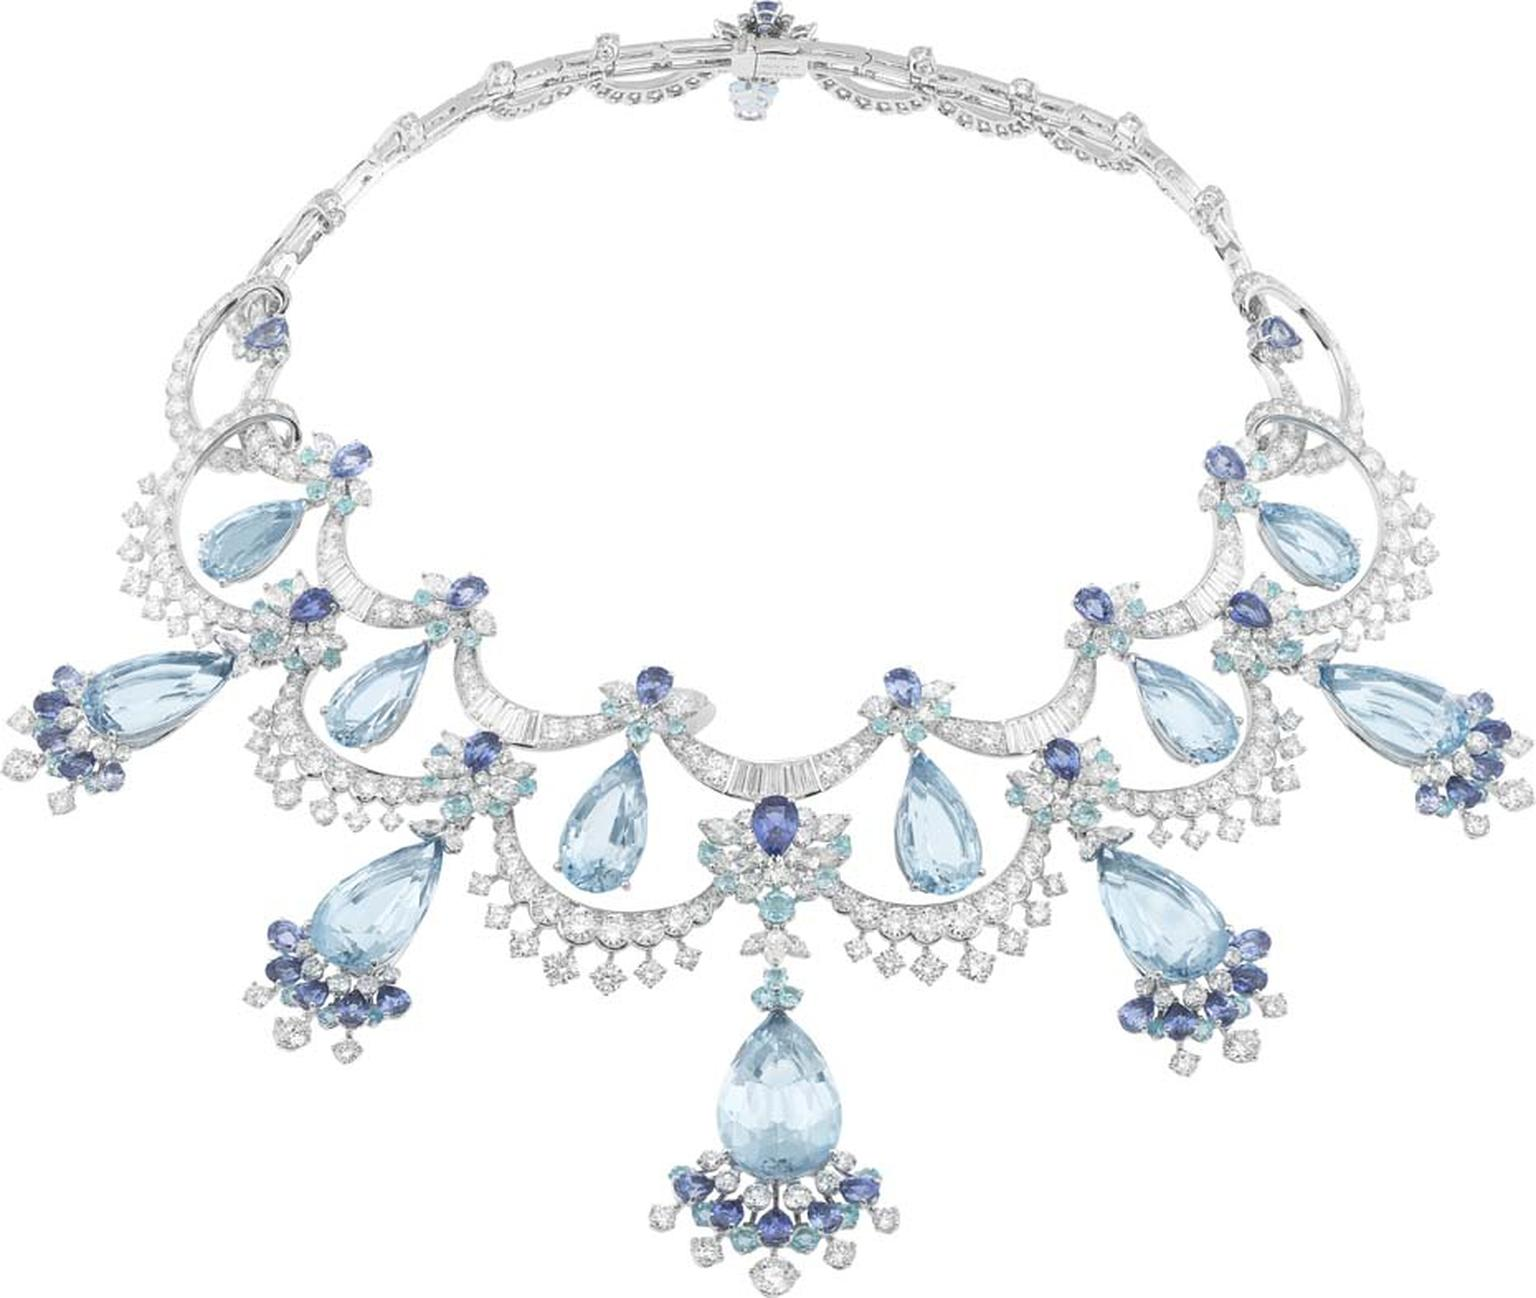 Van Cleef & Arpels Peau d'Âne collection white gold Colour of Time Dress necklace with round diamonds, tourmalines, sapphires and 12 pear-shaped aquamarines totalling 129.87ct.